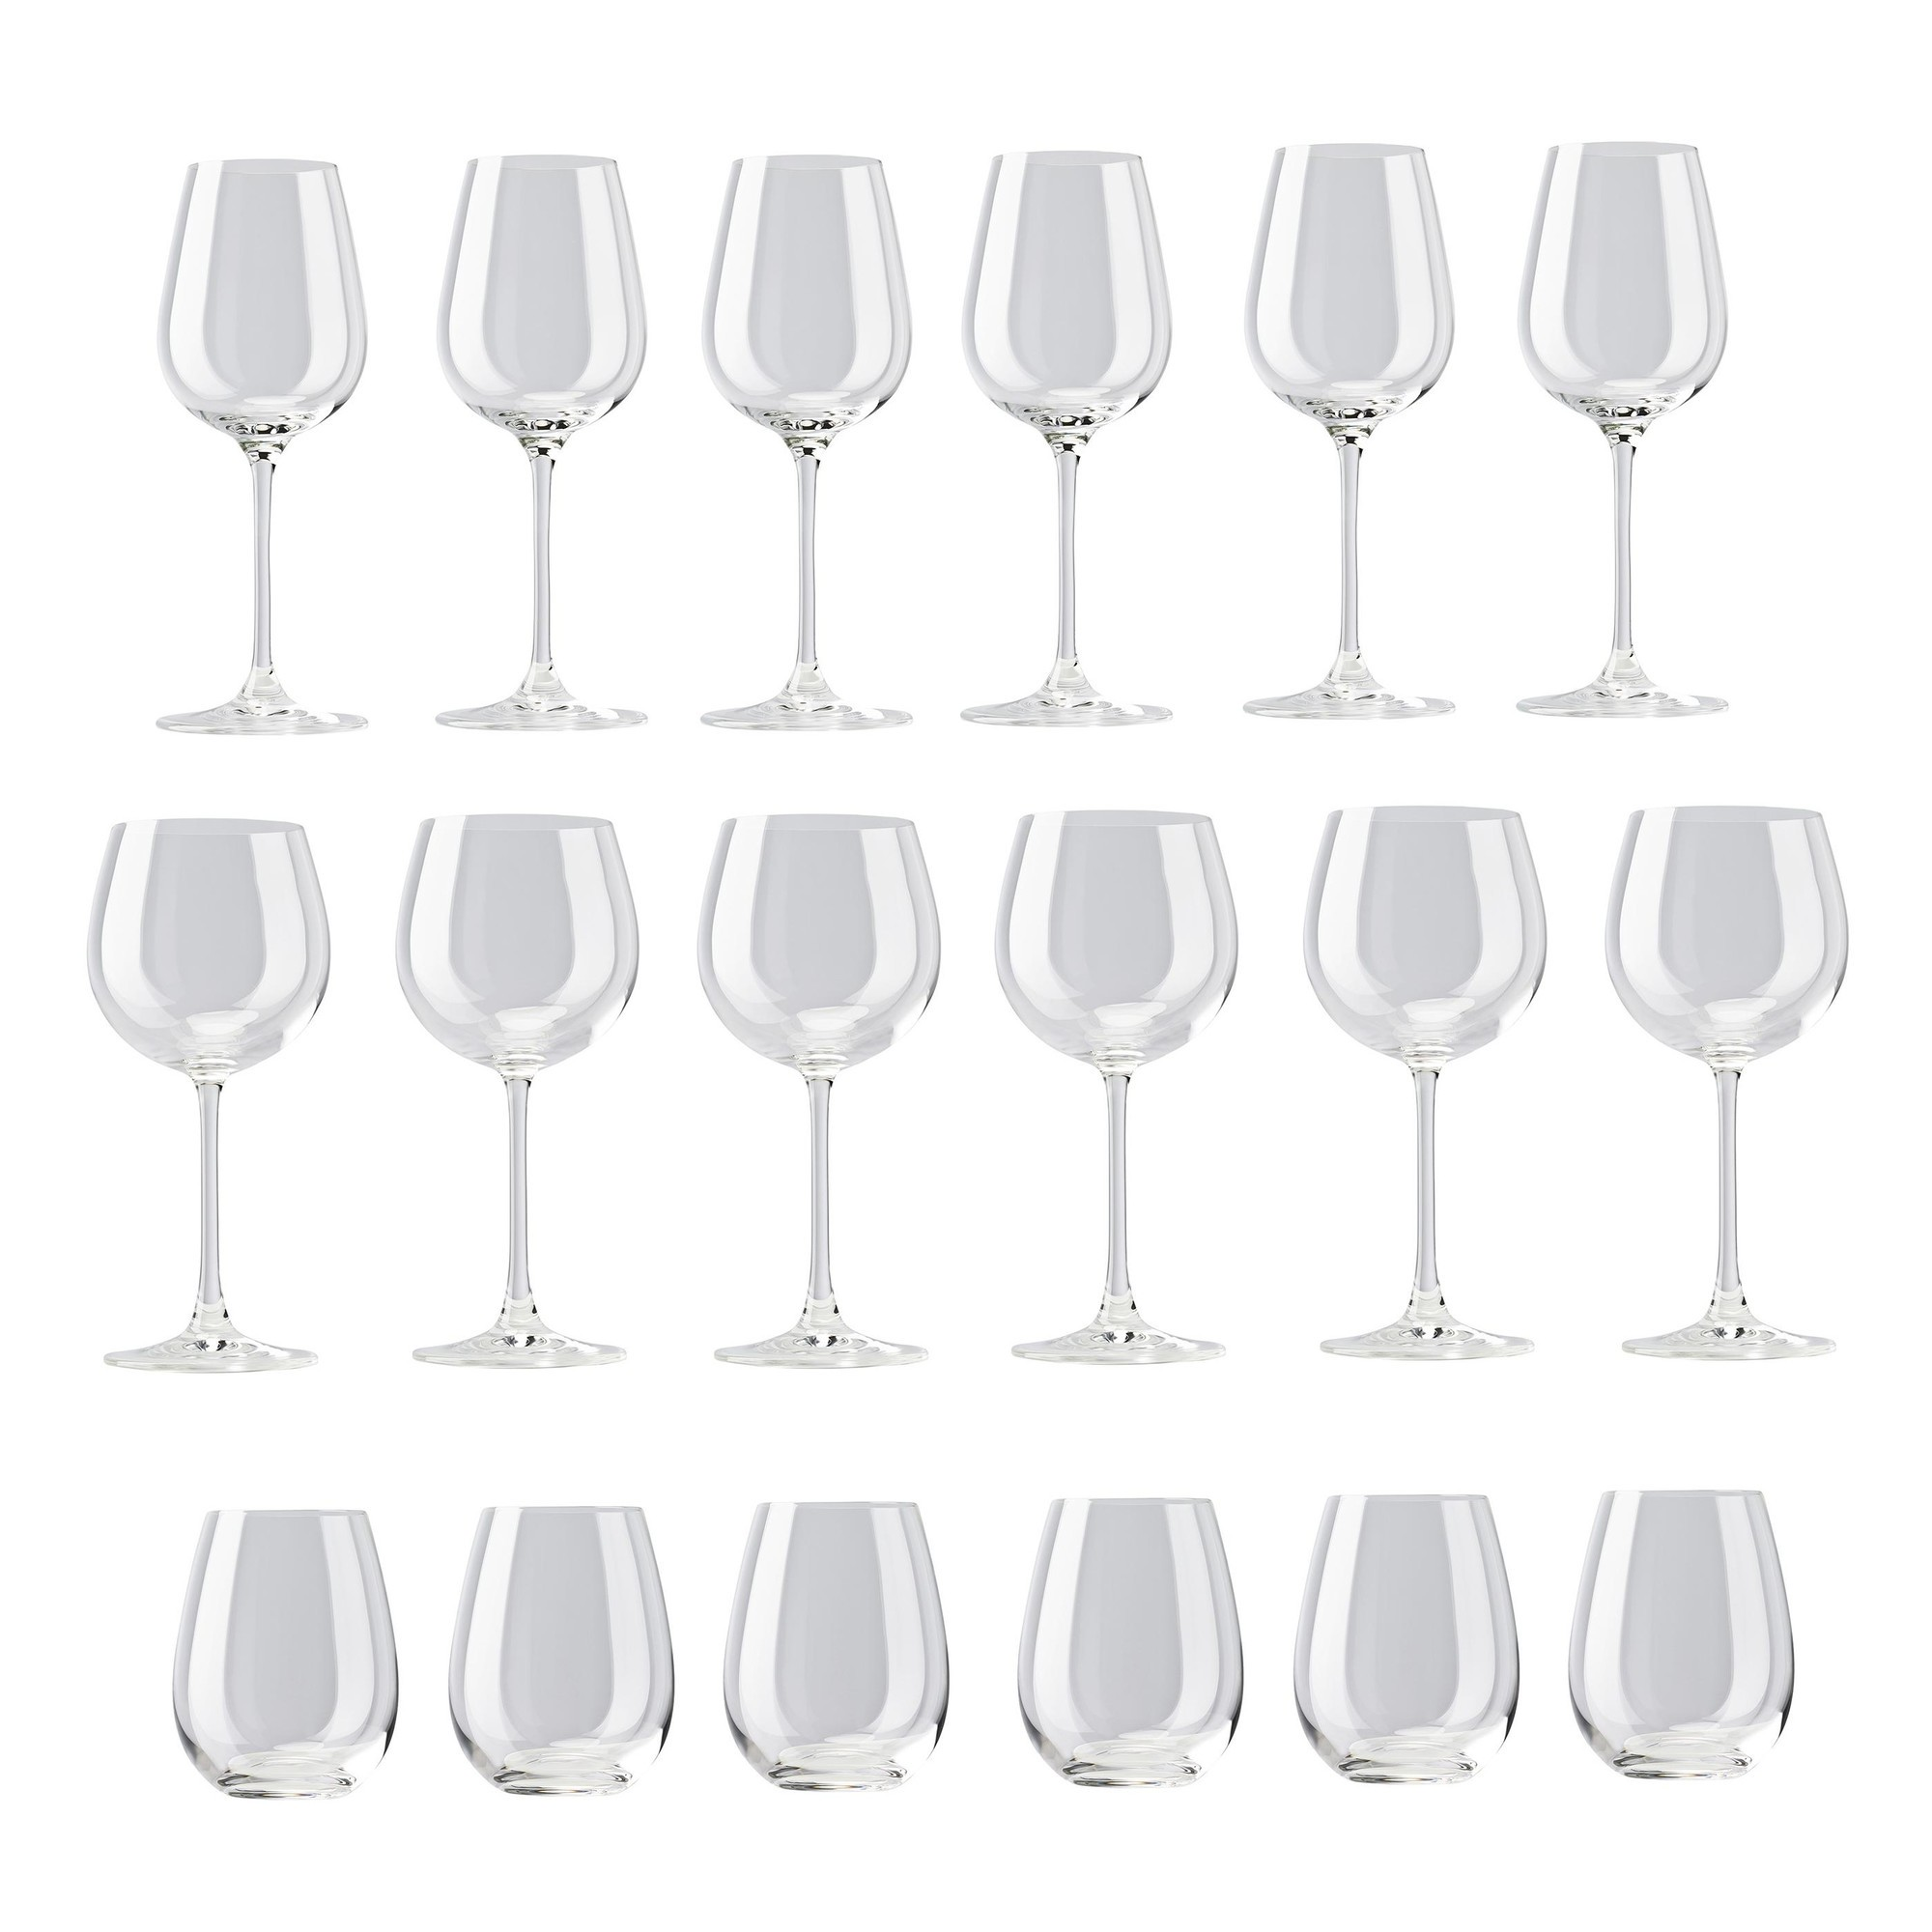 Weinkelch Glas Promotion Set Divino Glass Set Of 18